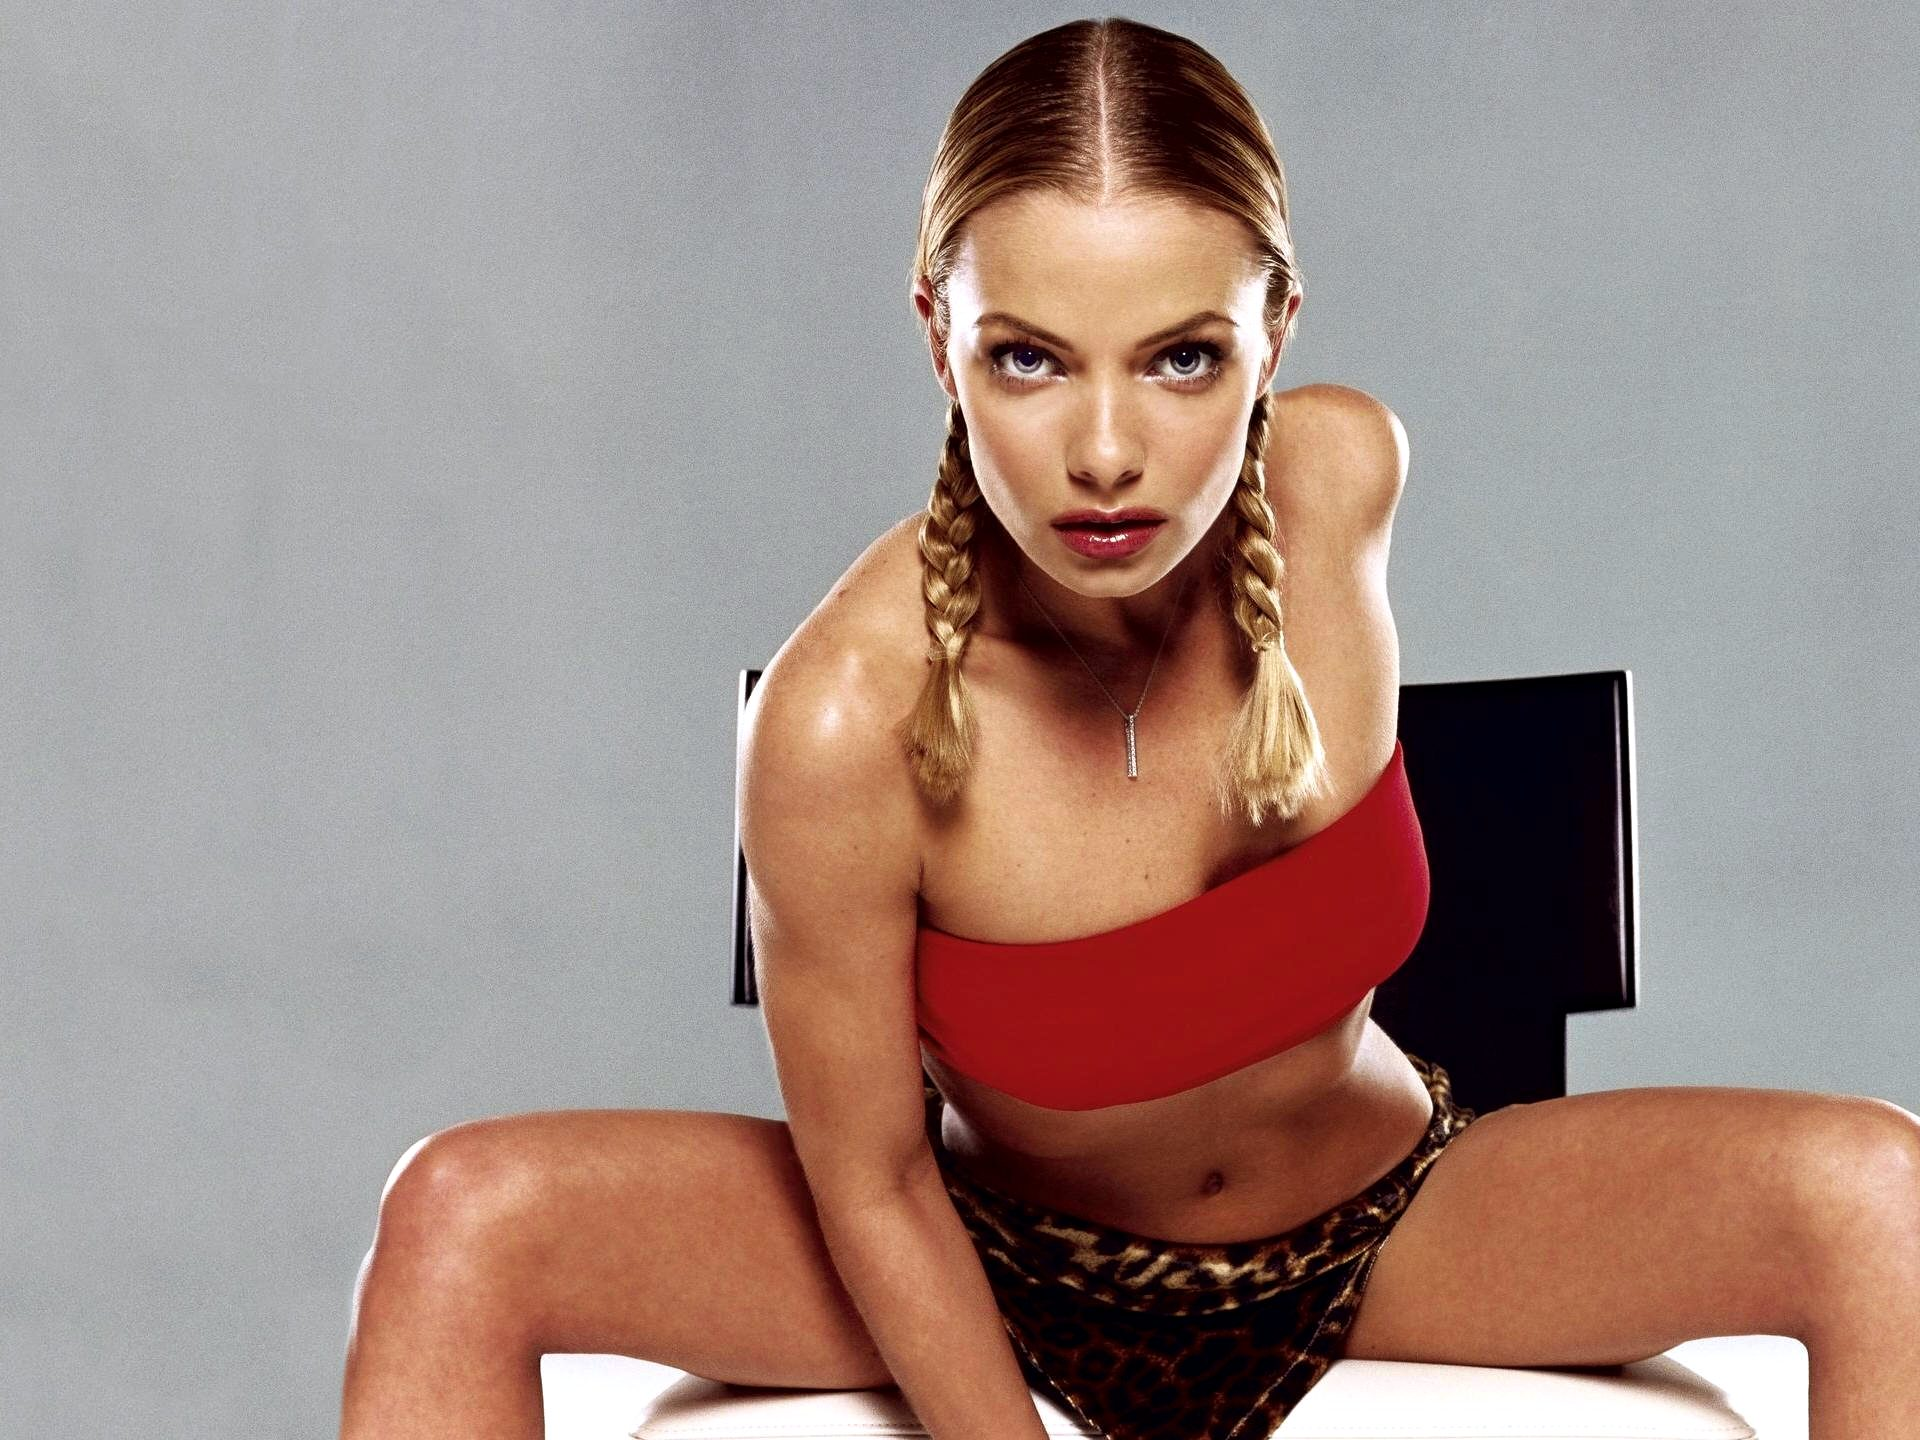 1920x1440 - Jaime Pressly Wallpapers 26